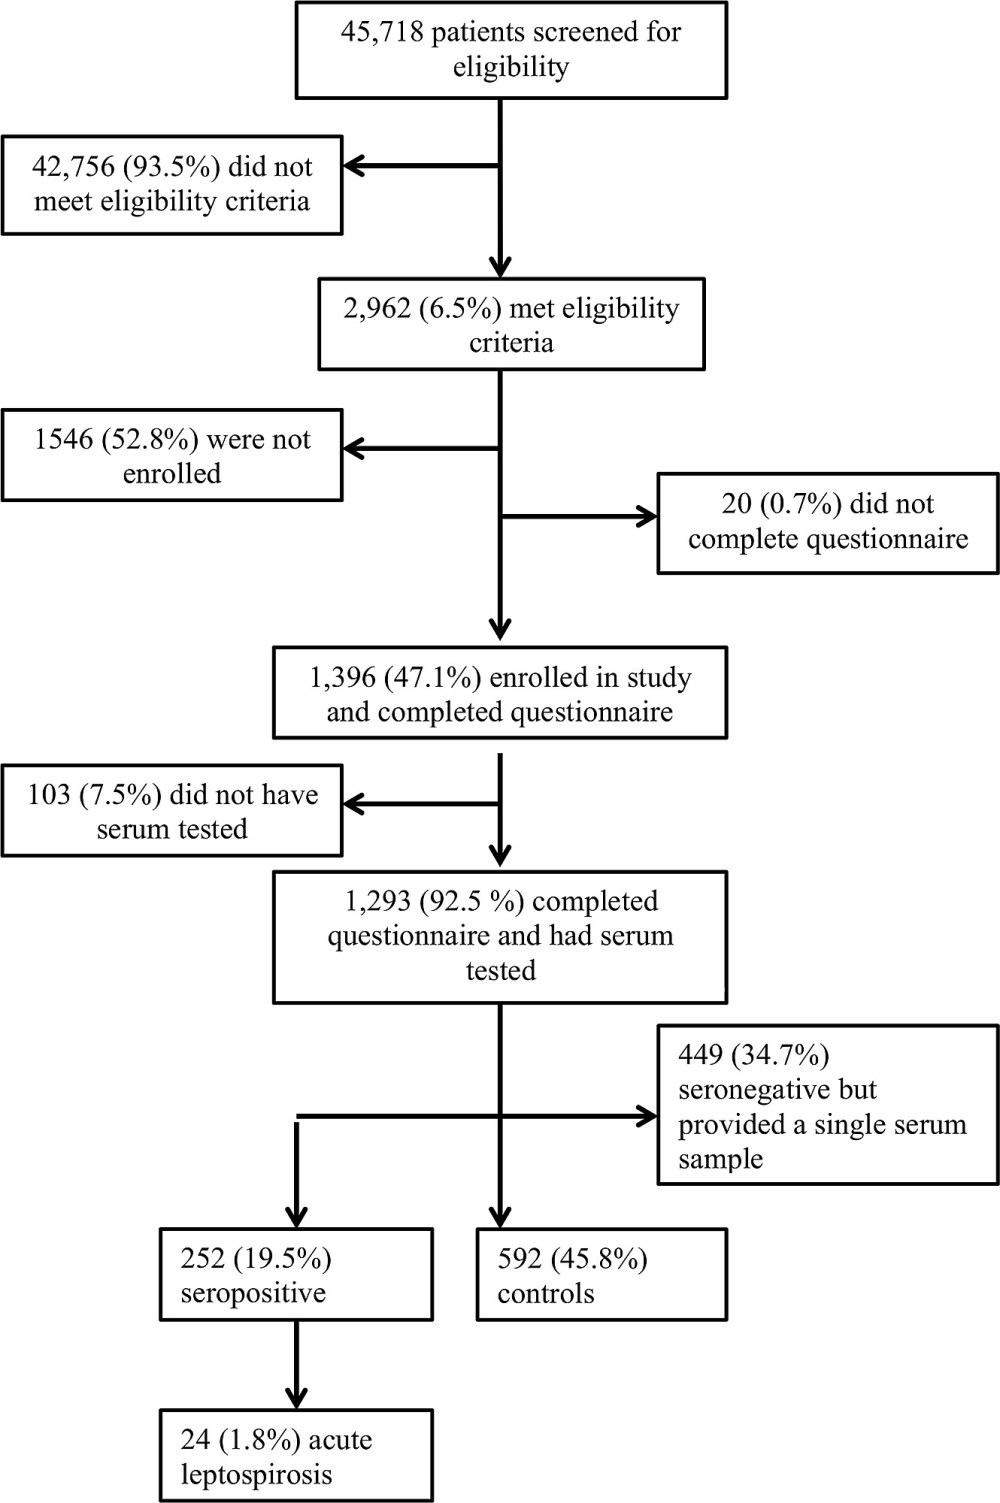 medium resolution of study flow diagram for patients seeking care at kilimanjaro christian medical centre and mawenzi regional referral hospital in moshi tanzania 2012 14